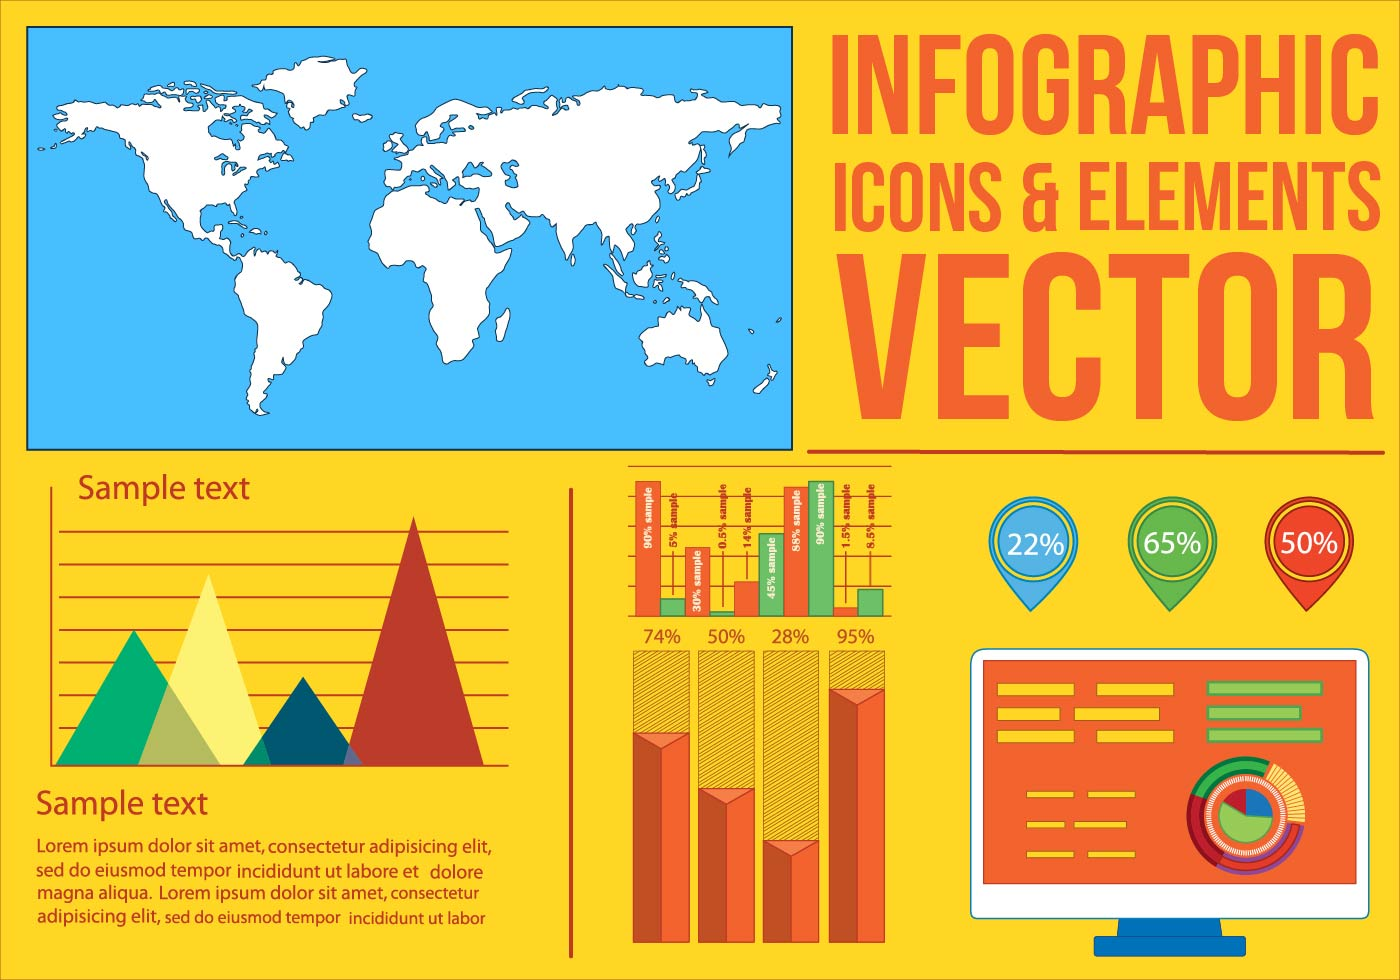 Infographic free vector download 5418 Free vector for